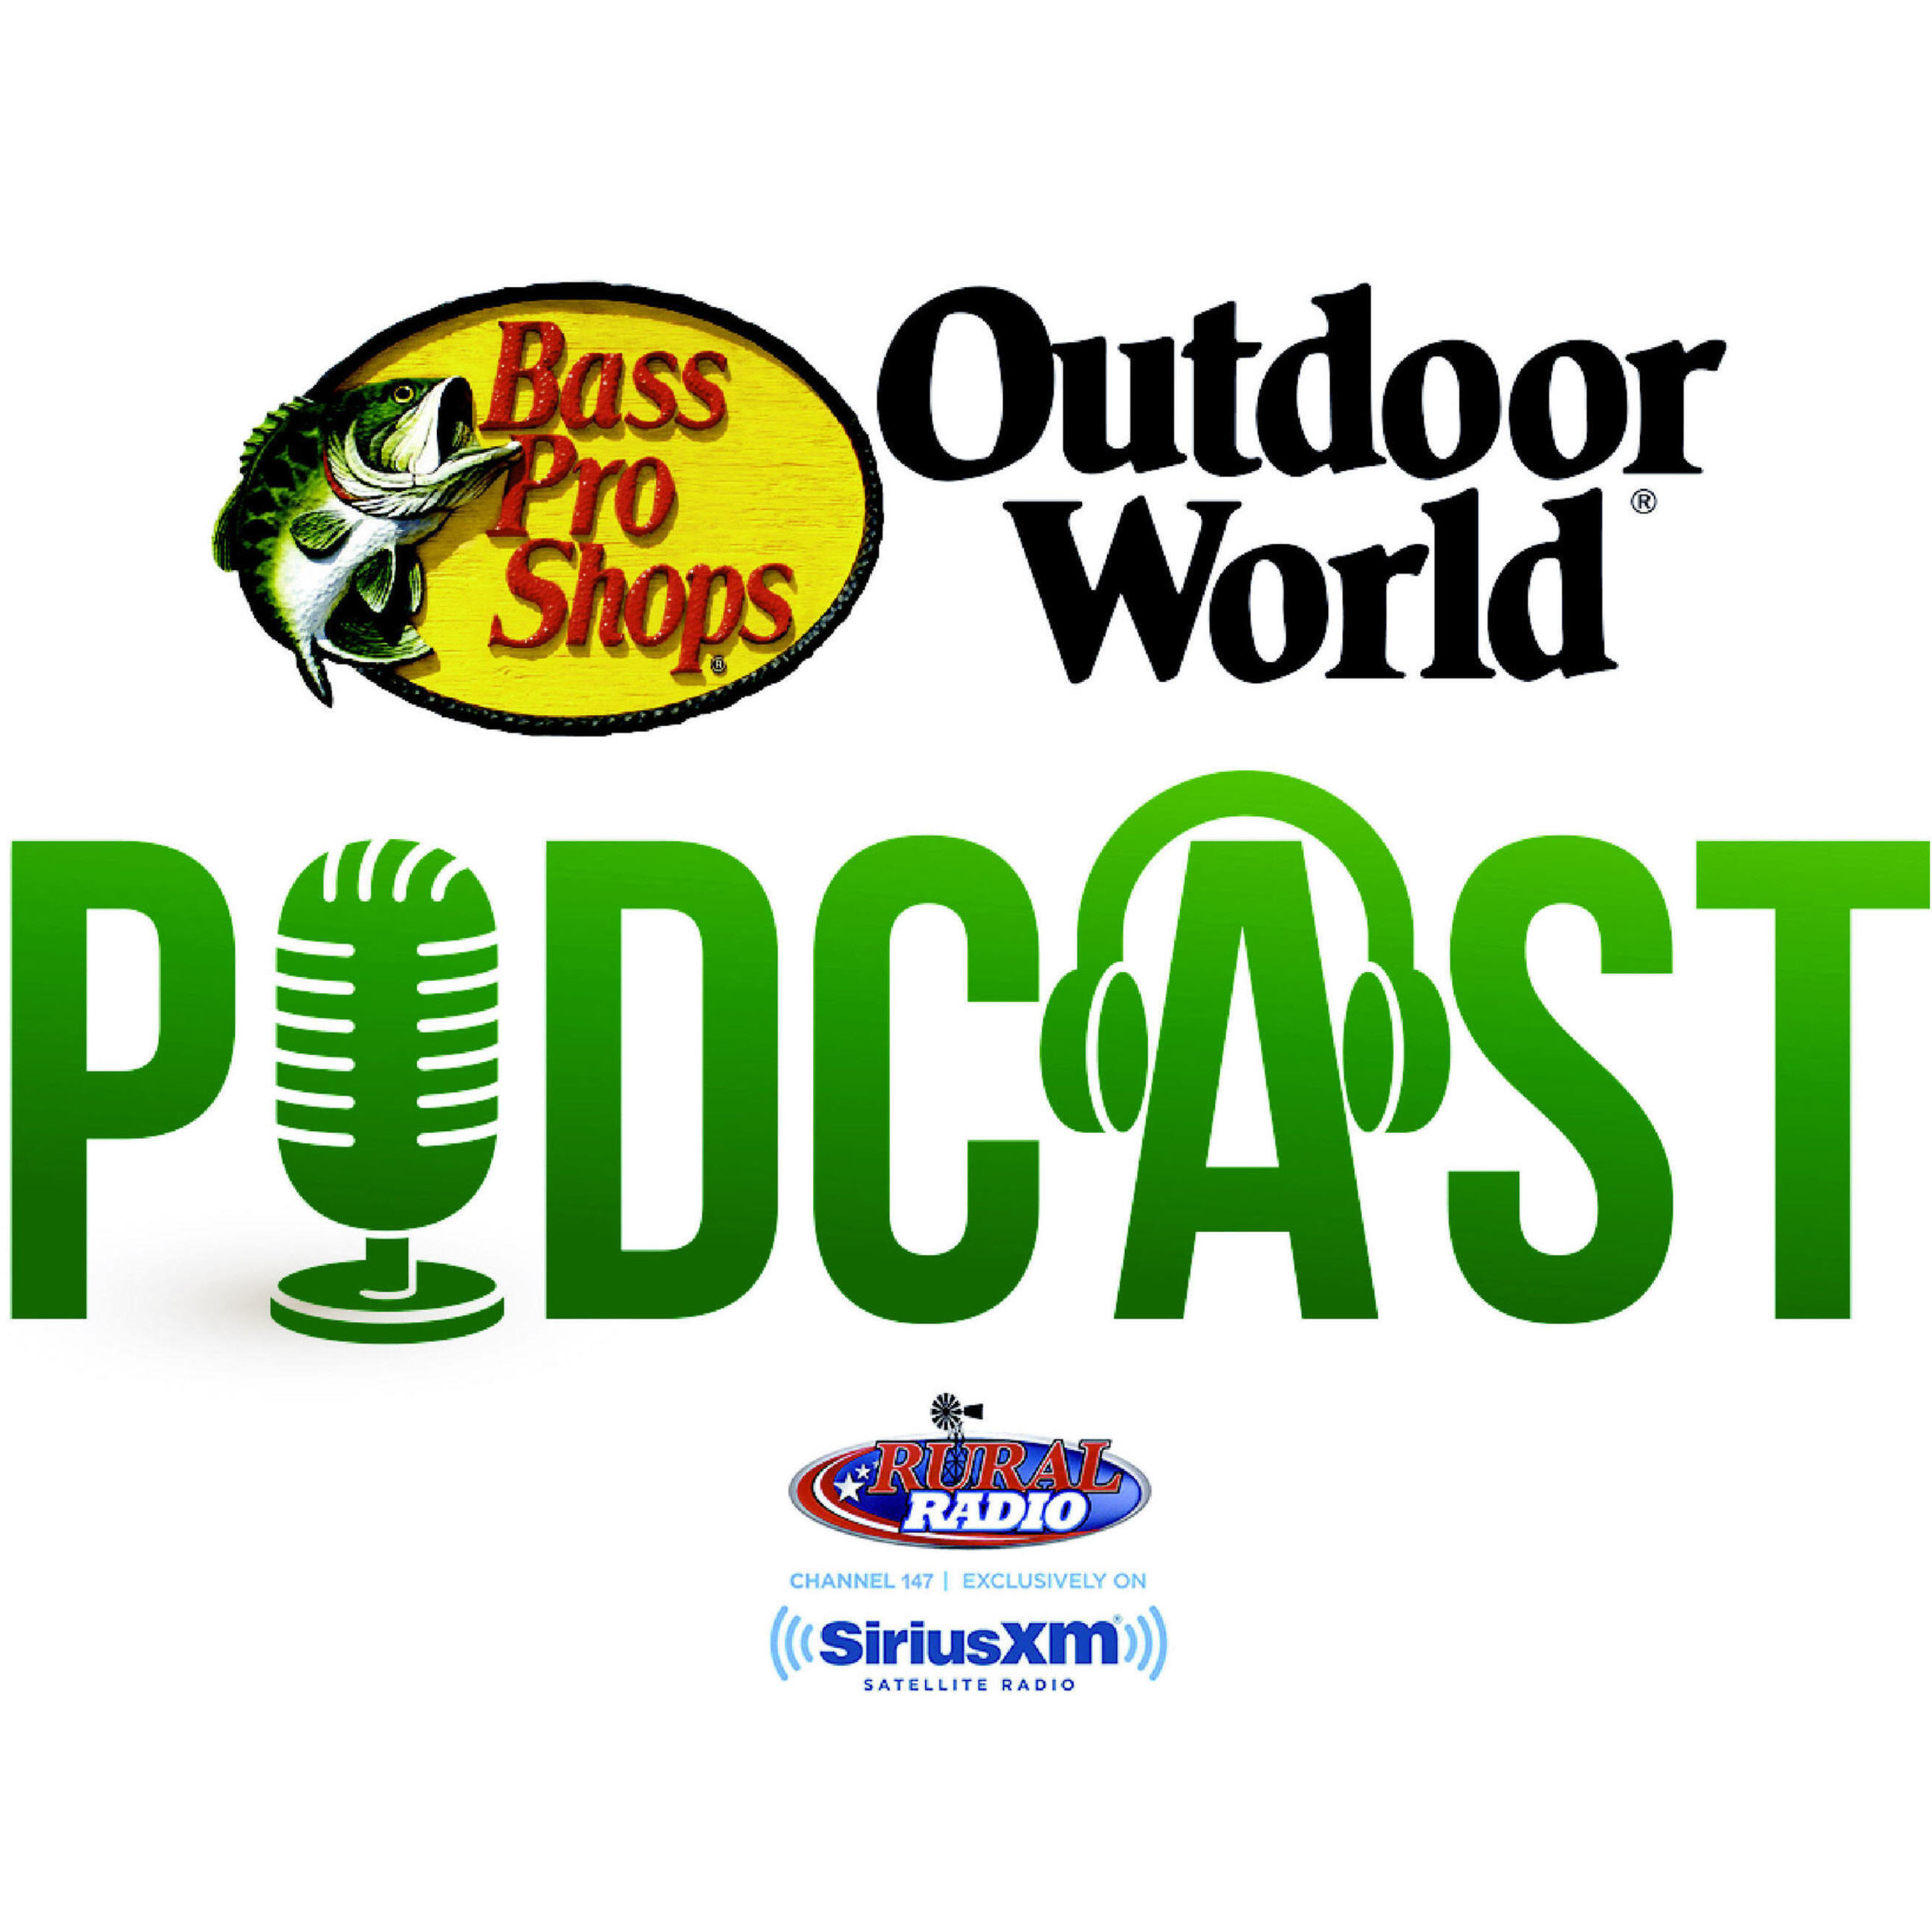 Artwork for podcast Bass Pro Shops Outdoor World